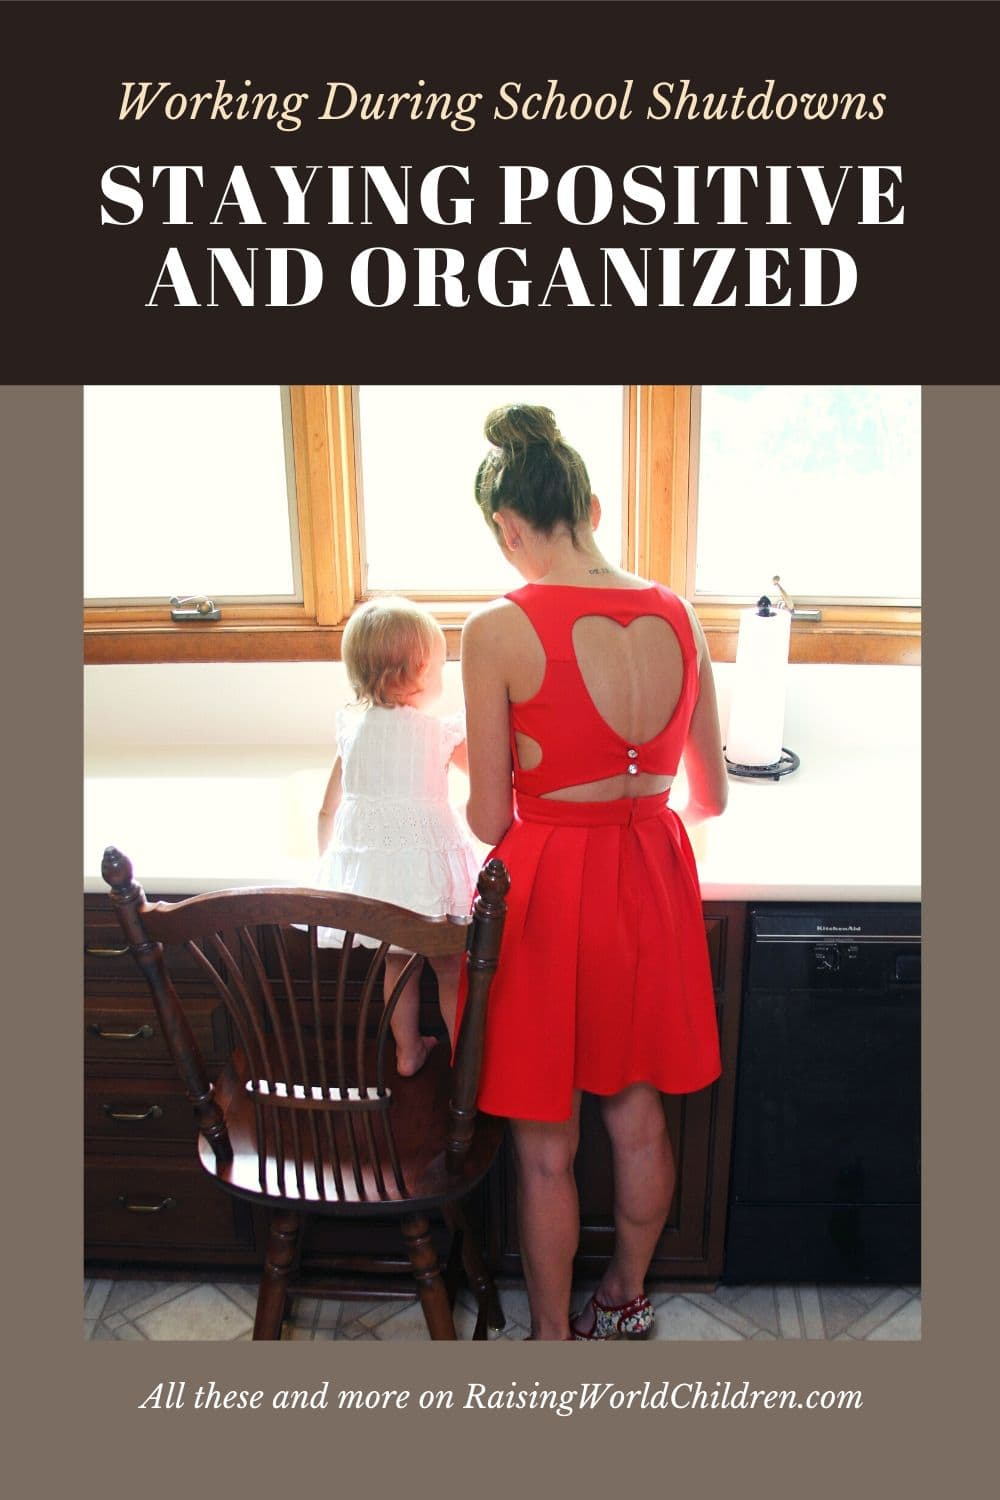 Keeping a Positive Mindset and Staying Organized for Working Moms During School Shutdowns